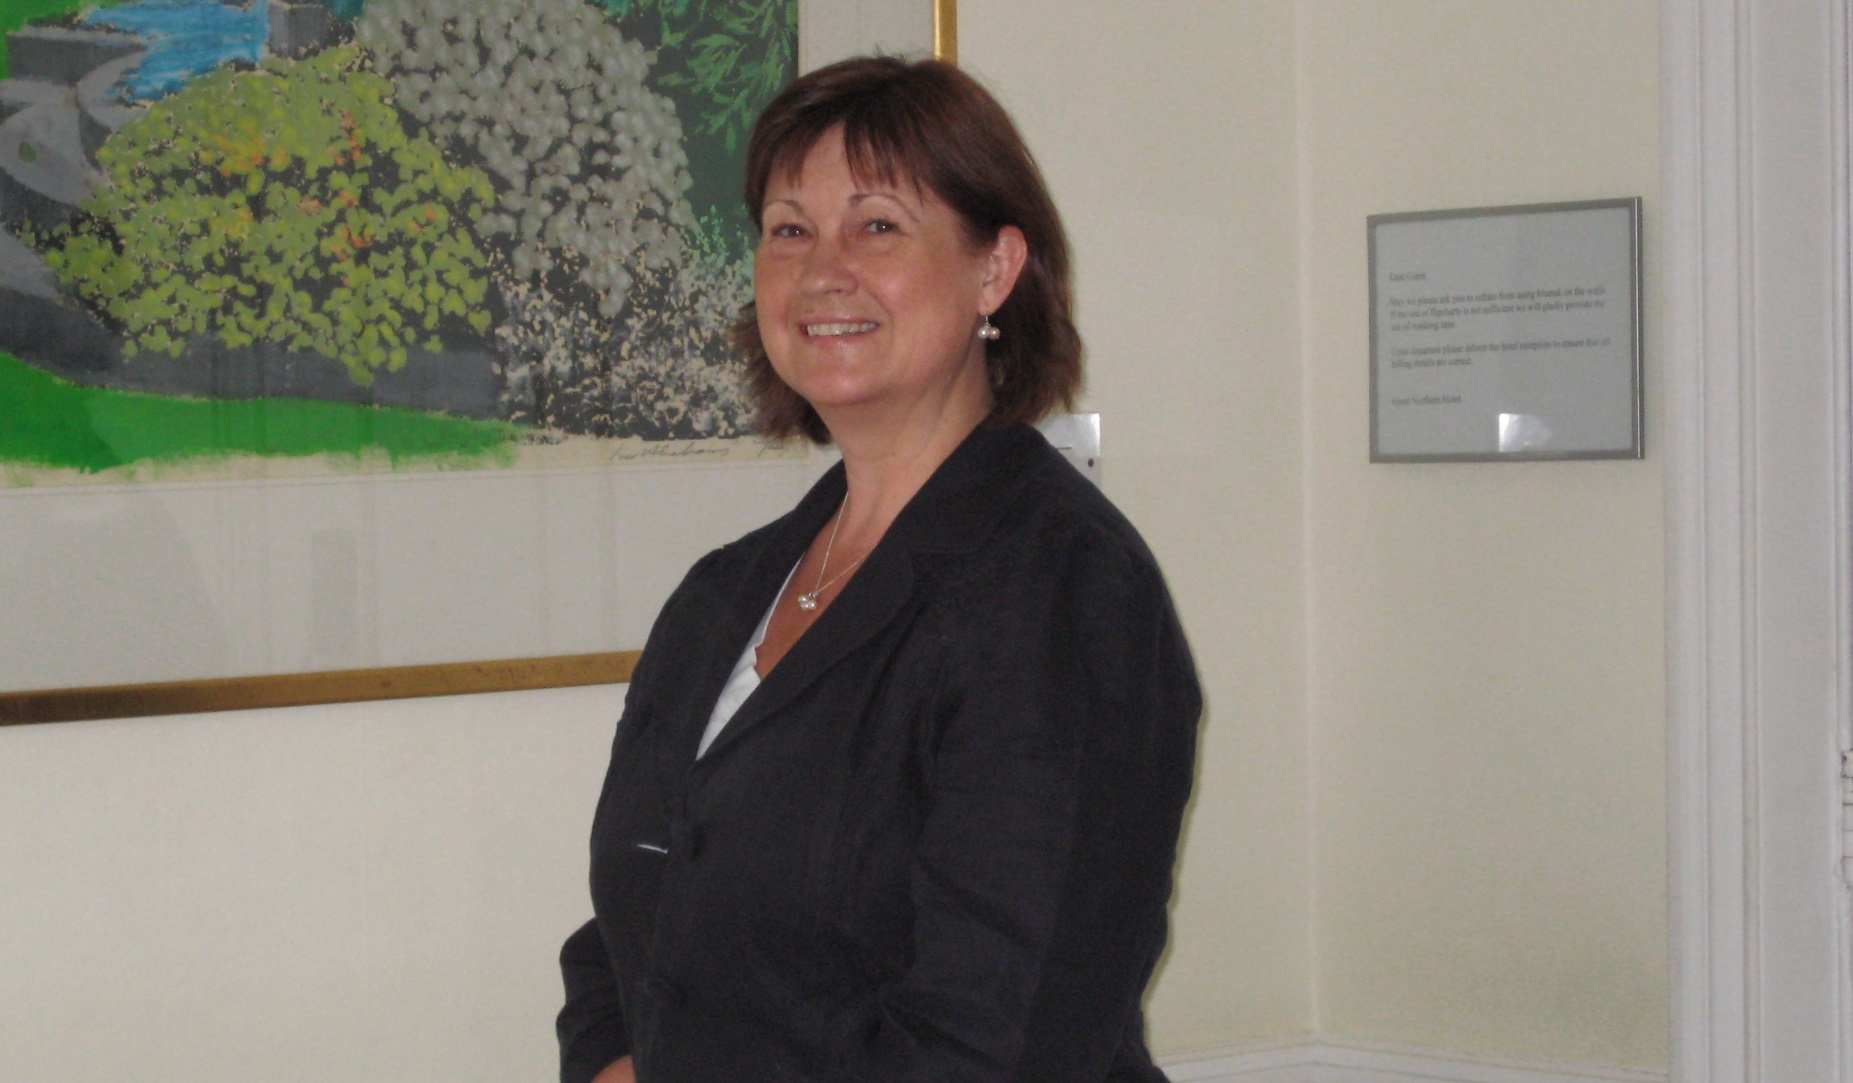 ehospice speaks to Anita Hayes, Head of Learning and Workforce at Hospice UK